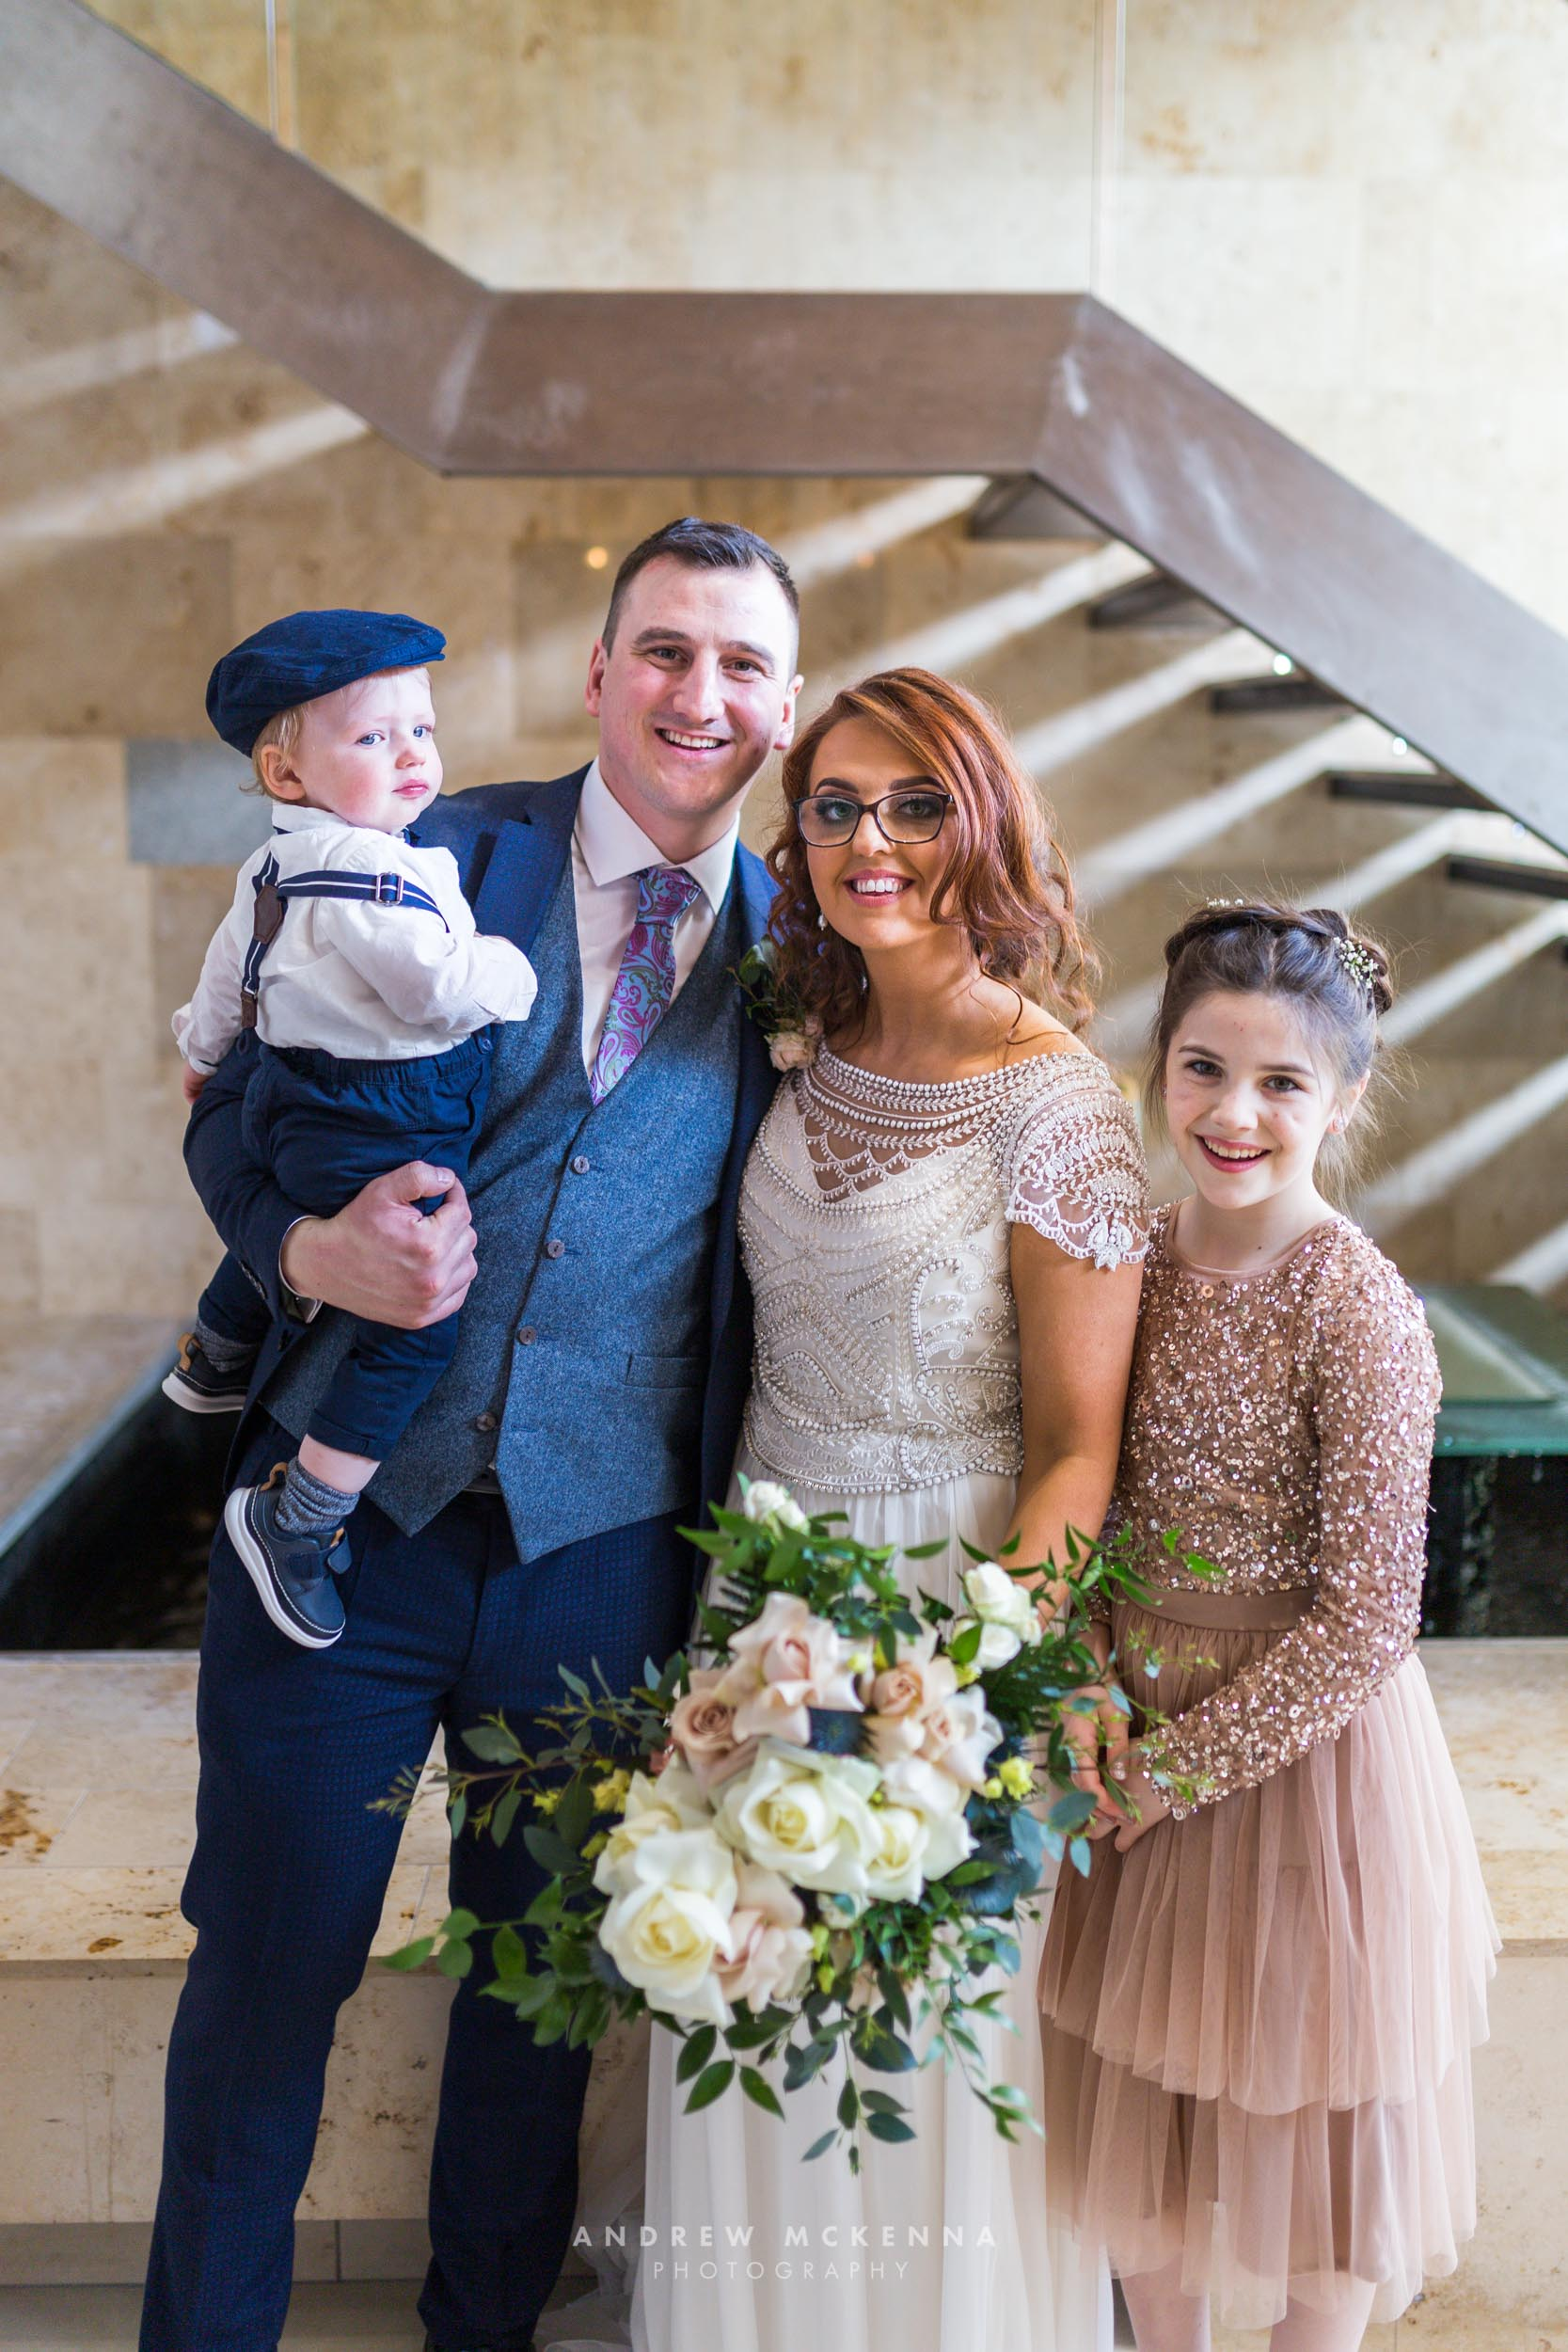 Sarah & Leigh - Slieve Donard Resort & Spa Wedding Photography C